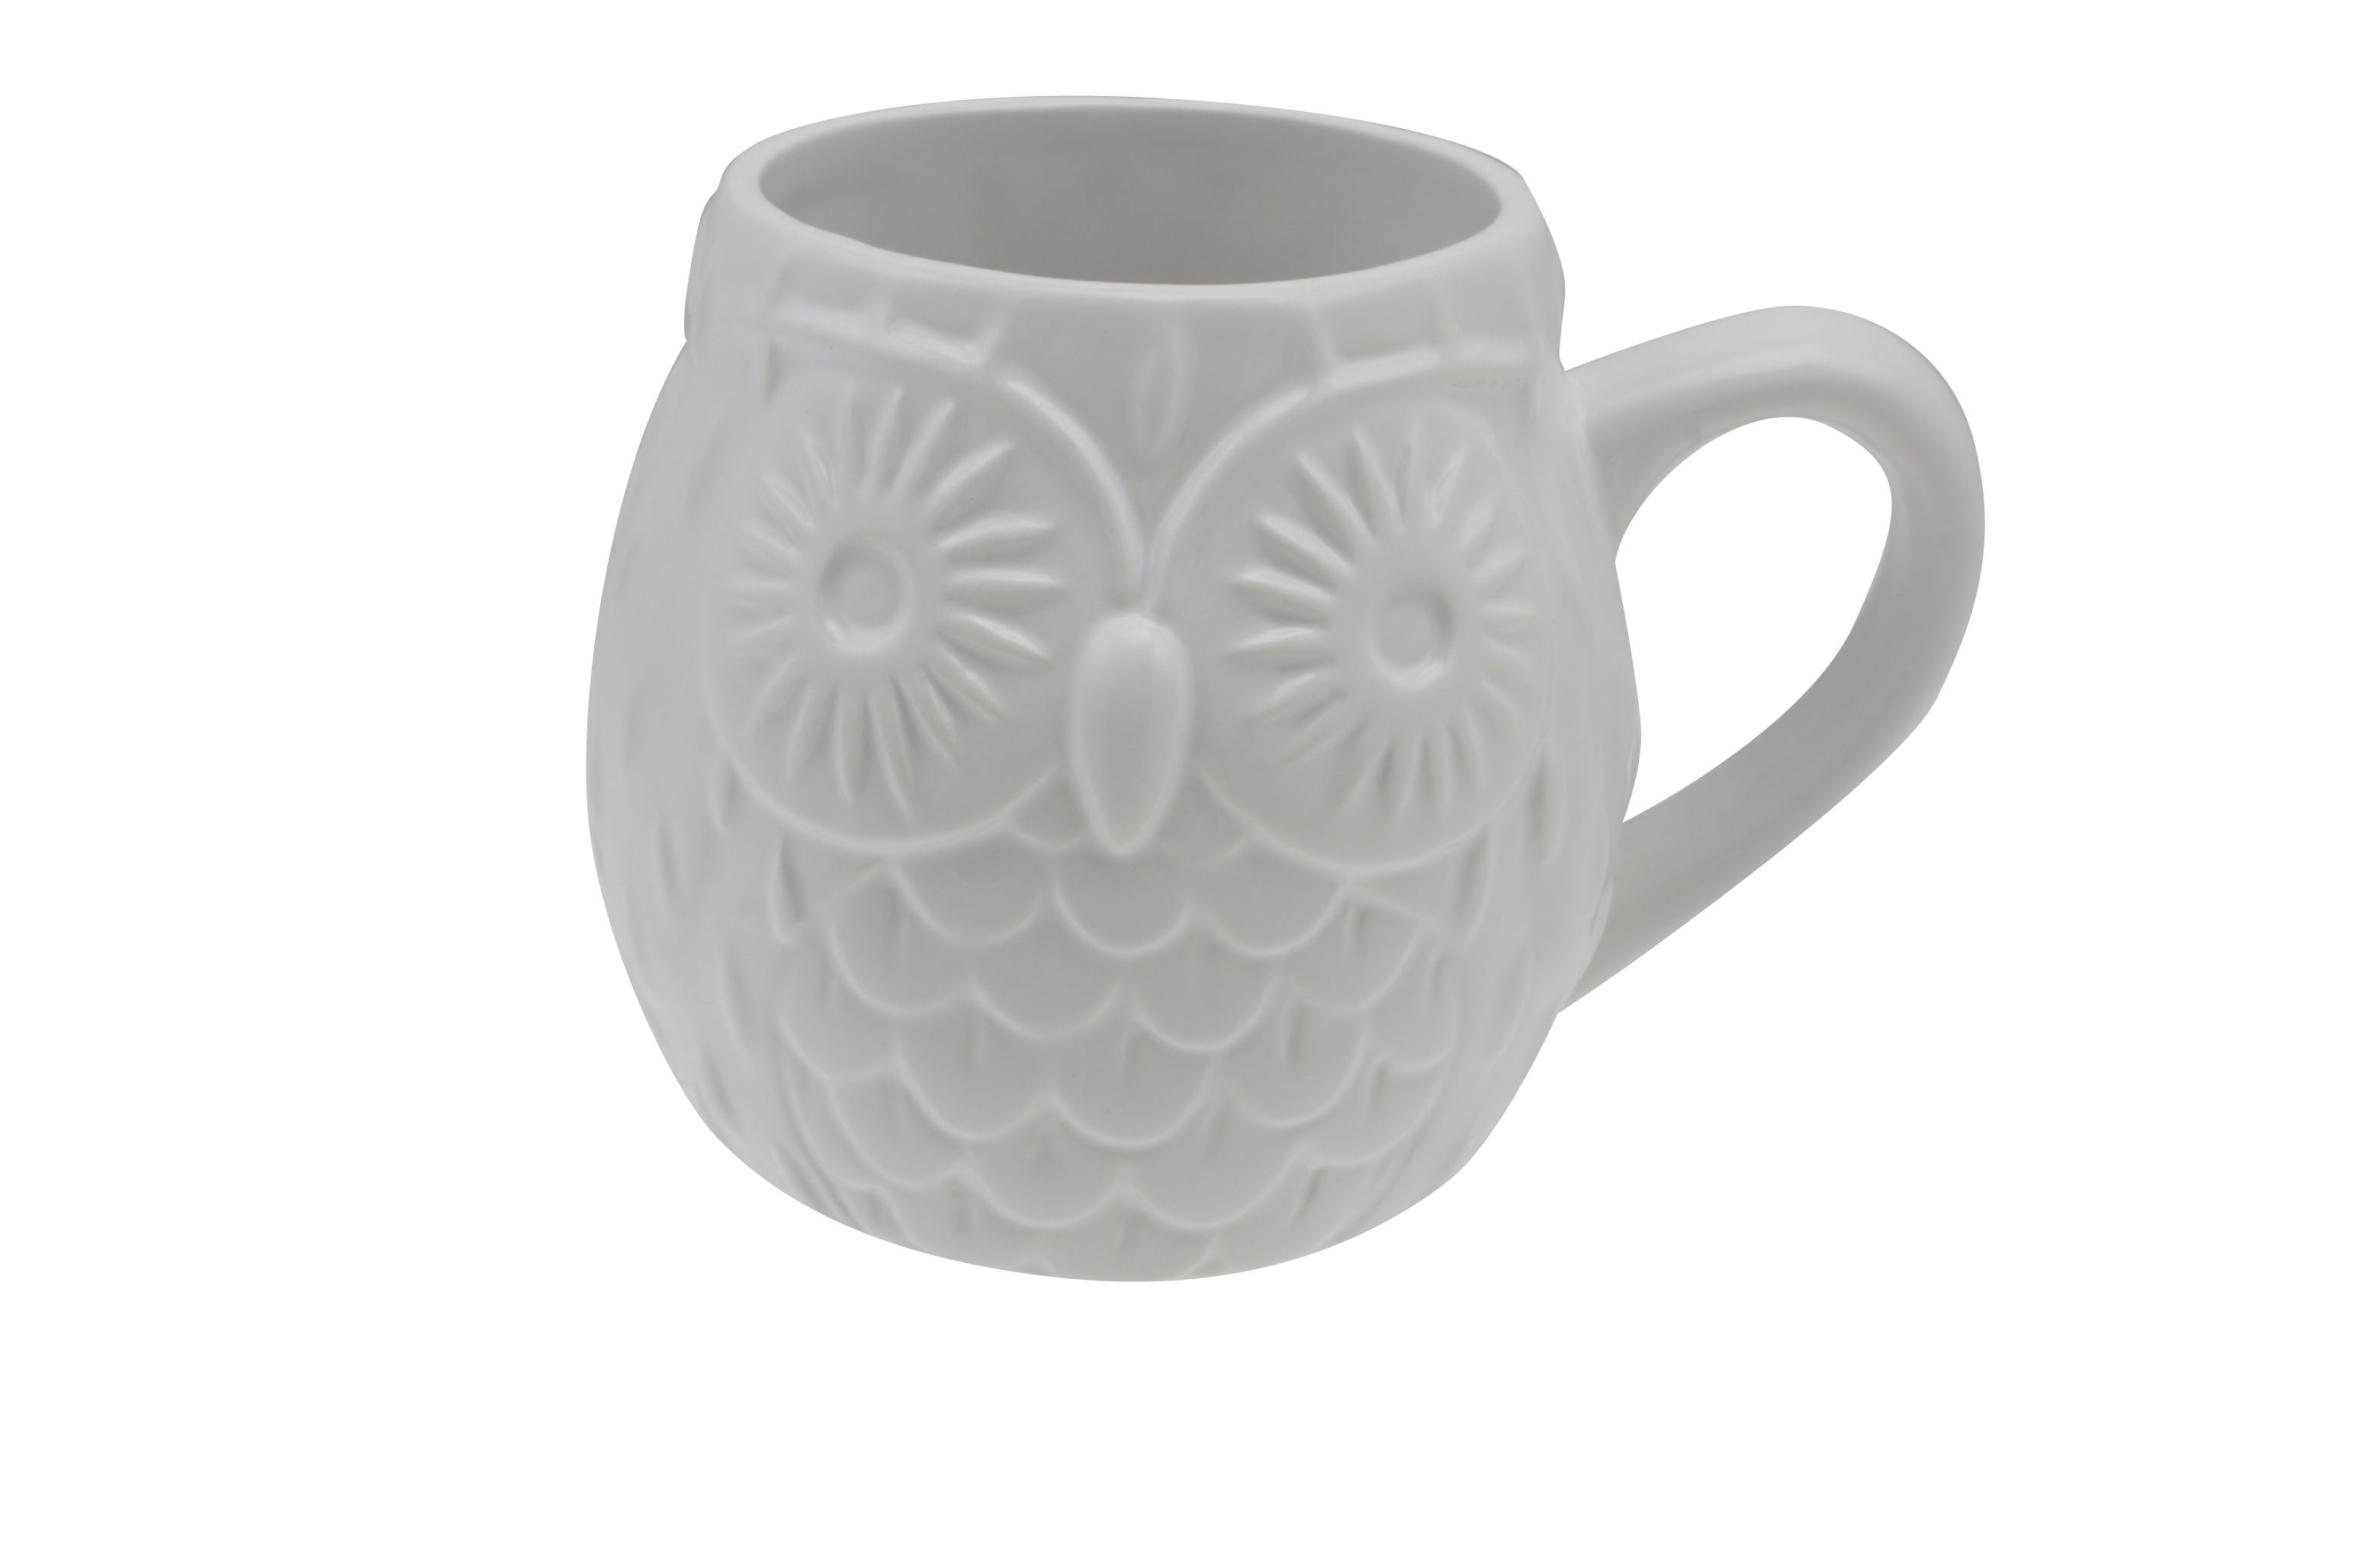 Owl Ceramic Mug 12x Coffee Mug Embossed Owl Dishwasher Safe Microwaveable